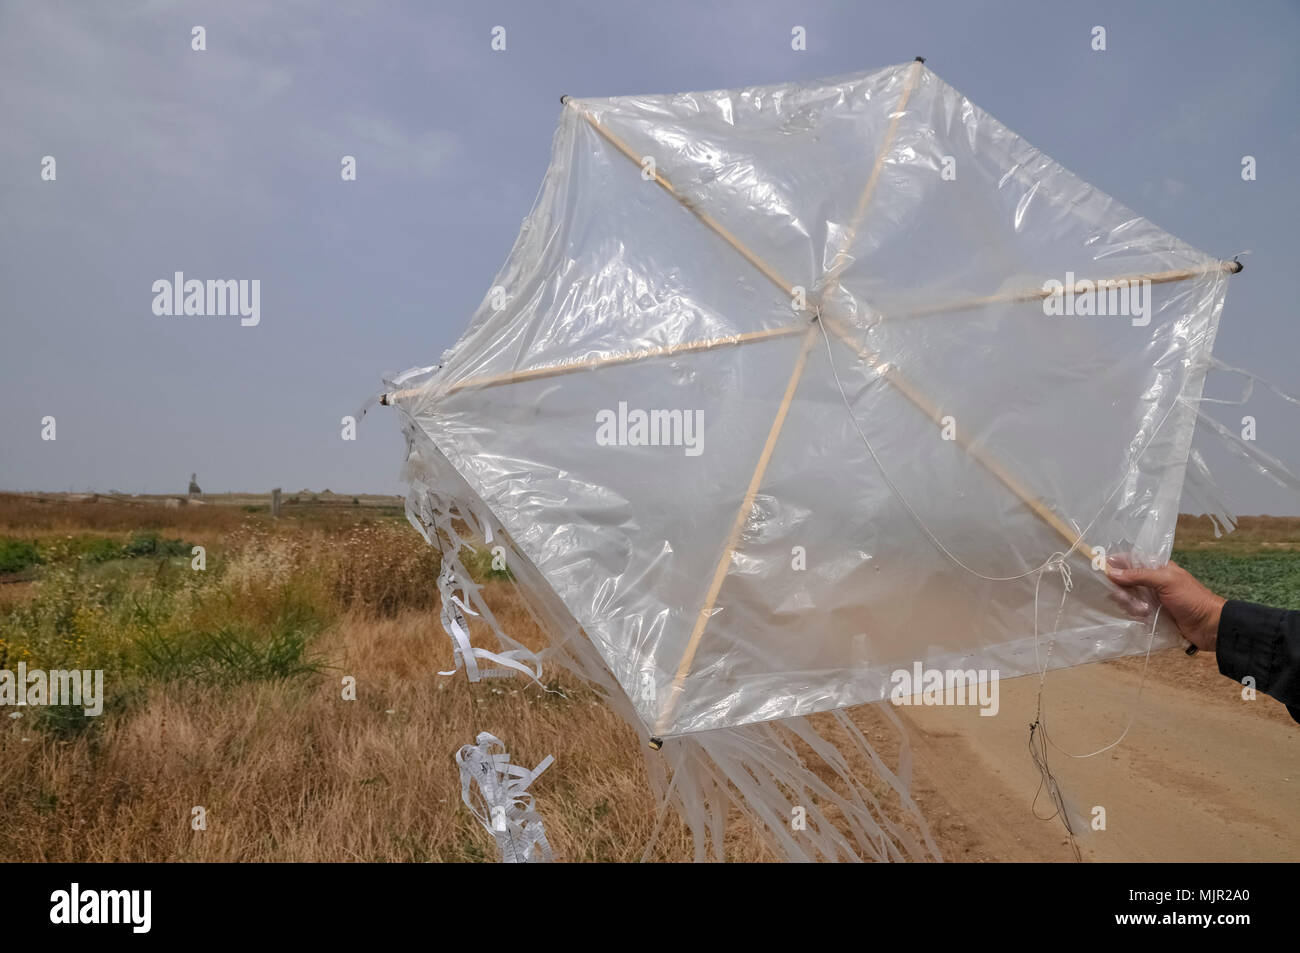 Kite bomb. Simple, homemade kites are flown over the Israeli border with a fire bomb attached.